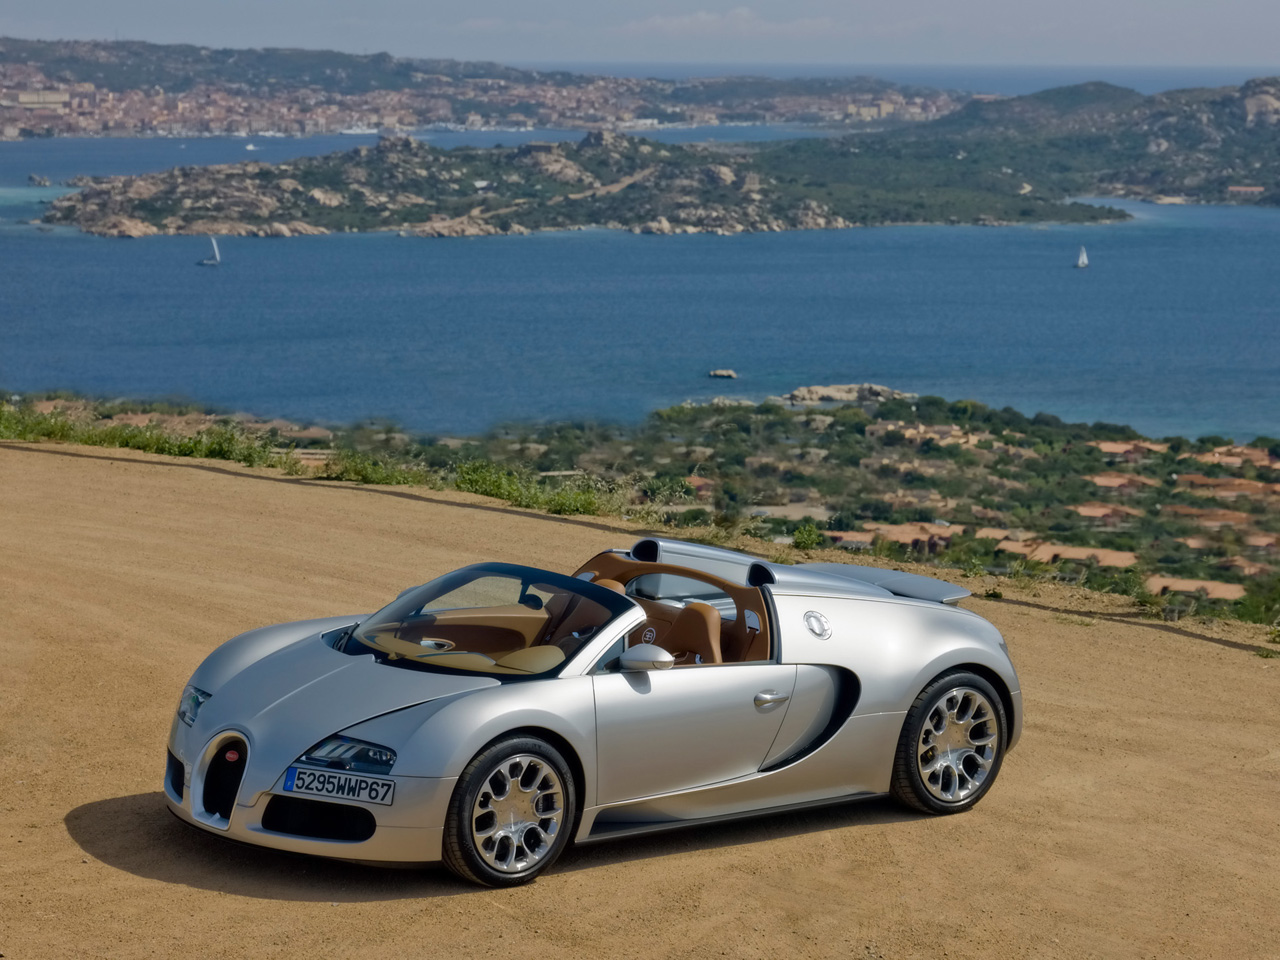 most exotic cars car makers in the world top 10 hot cars list. Black Bedroom Furniture Sets. Home Design Ideas